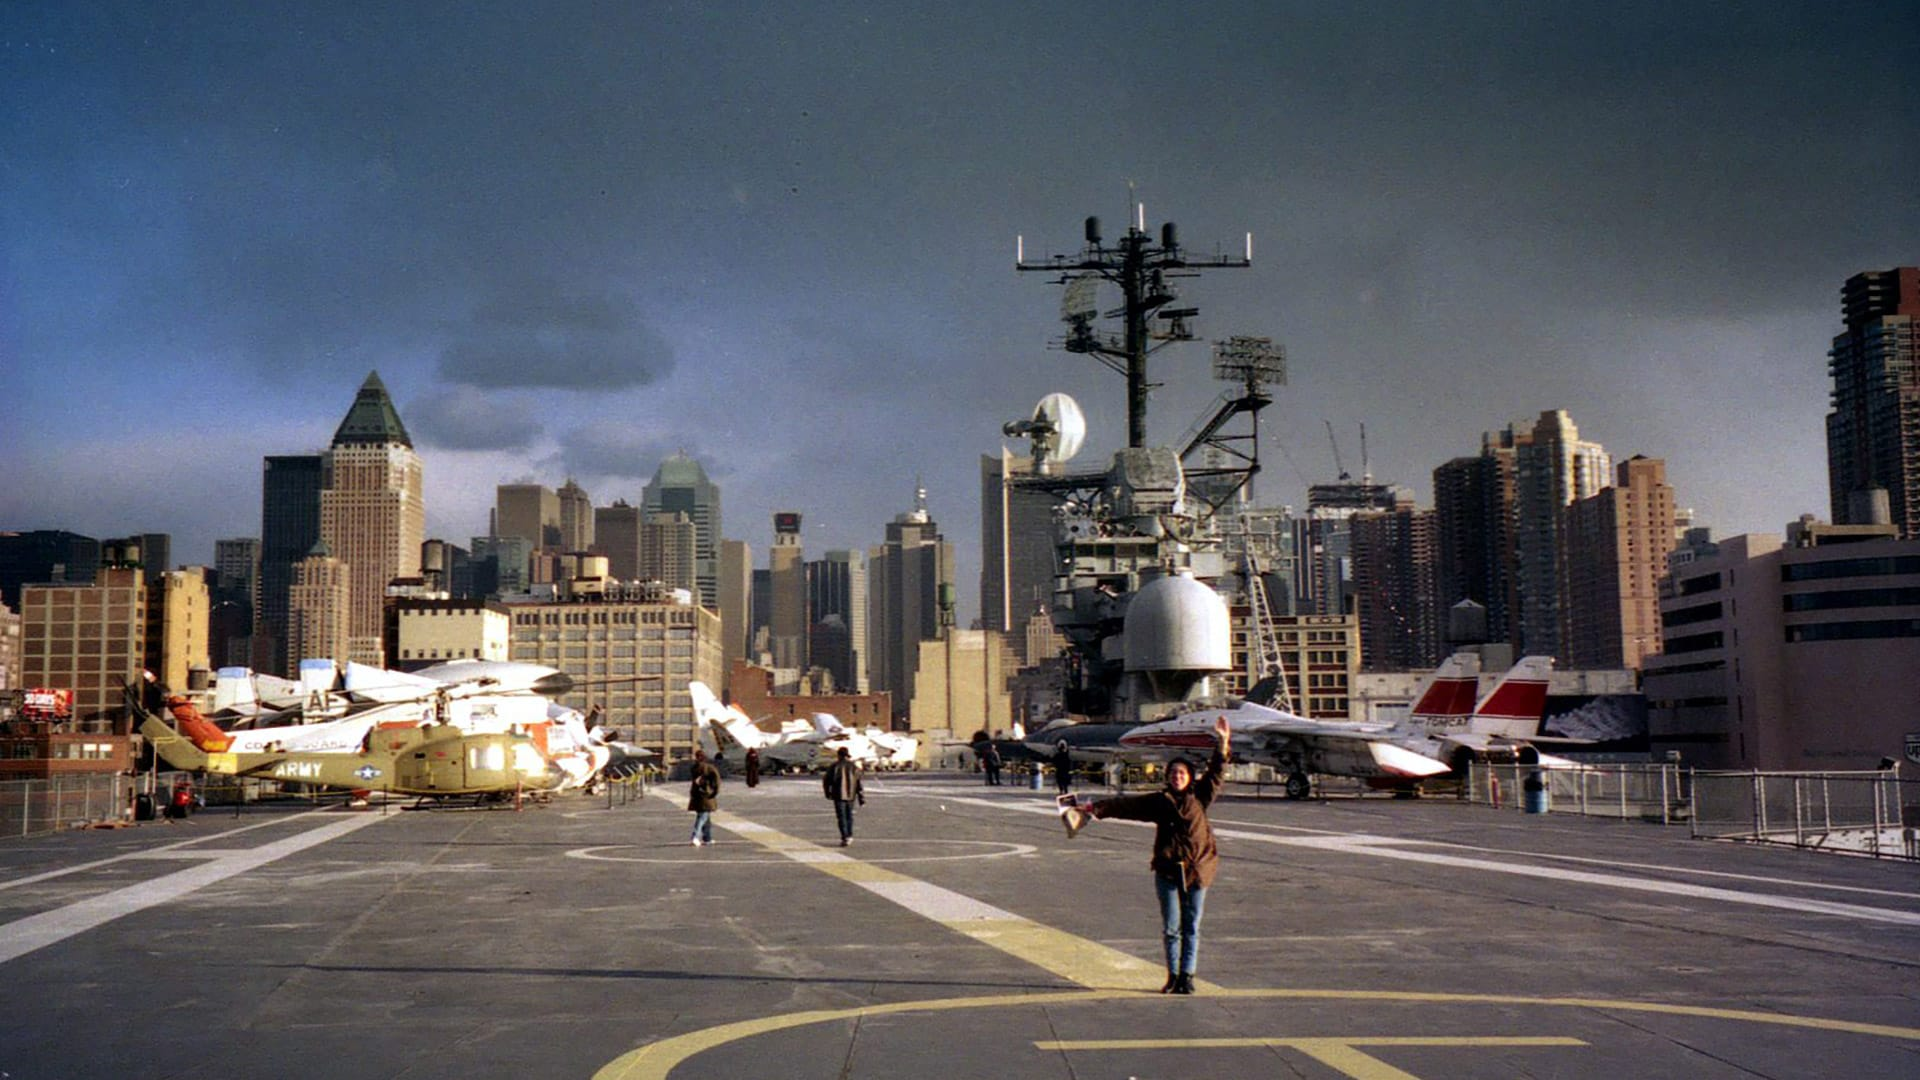 View of the New York skyline from aboard the Intrepid. Photo by David Monniaux via Wikipedia